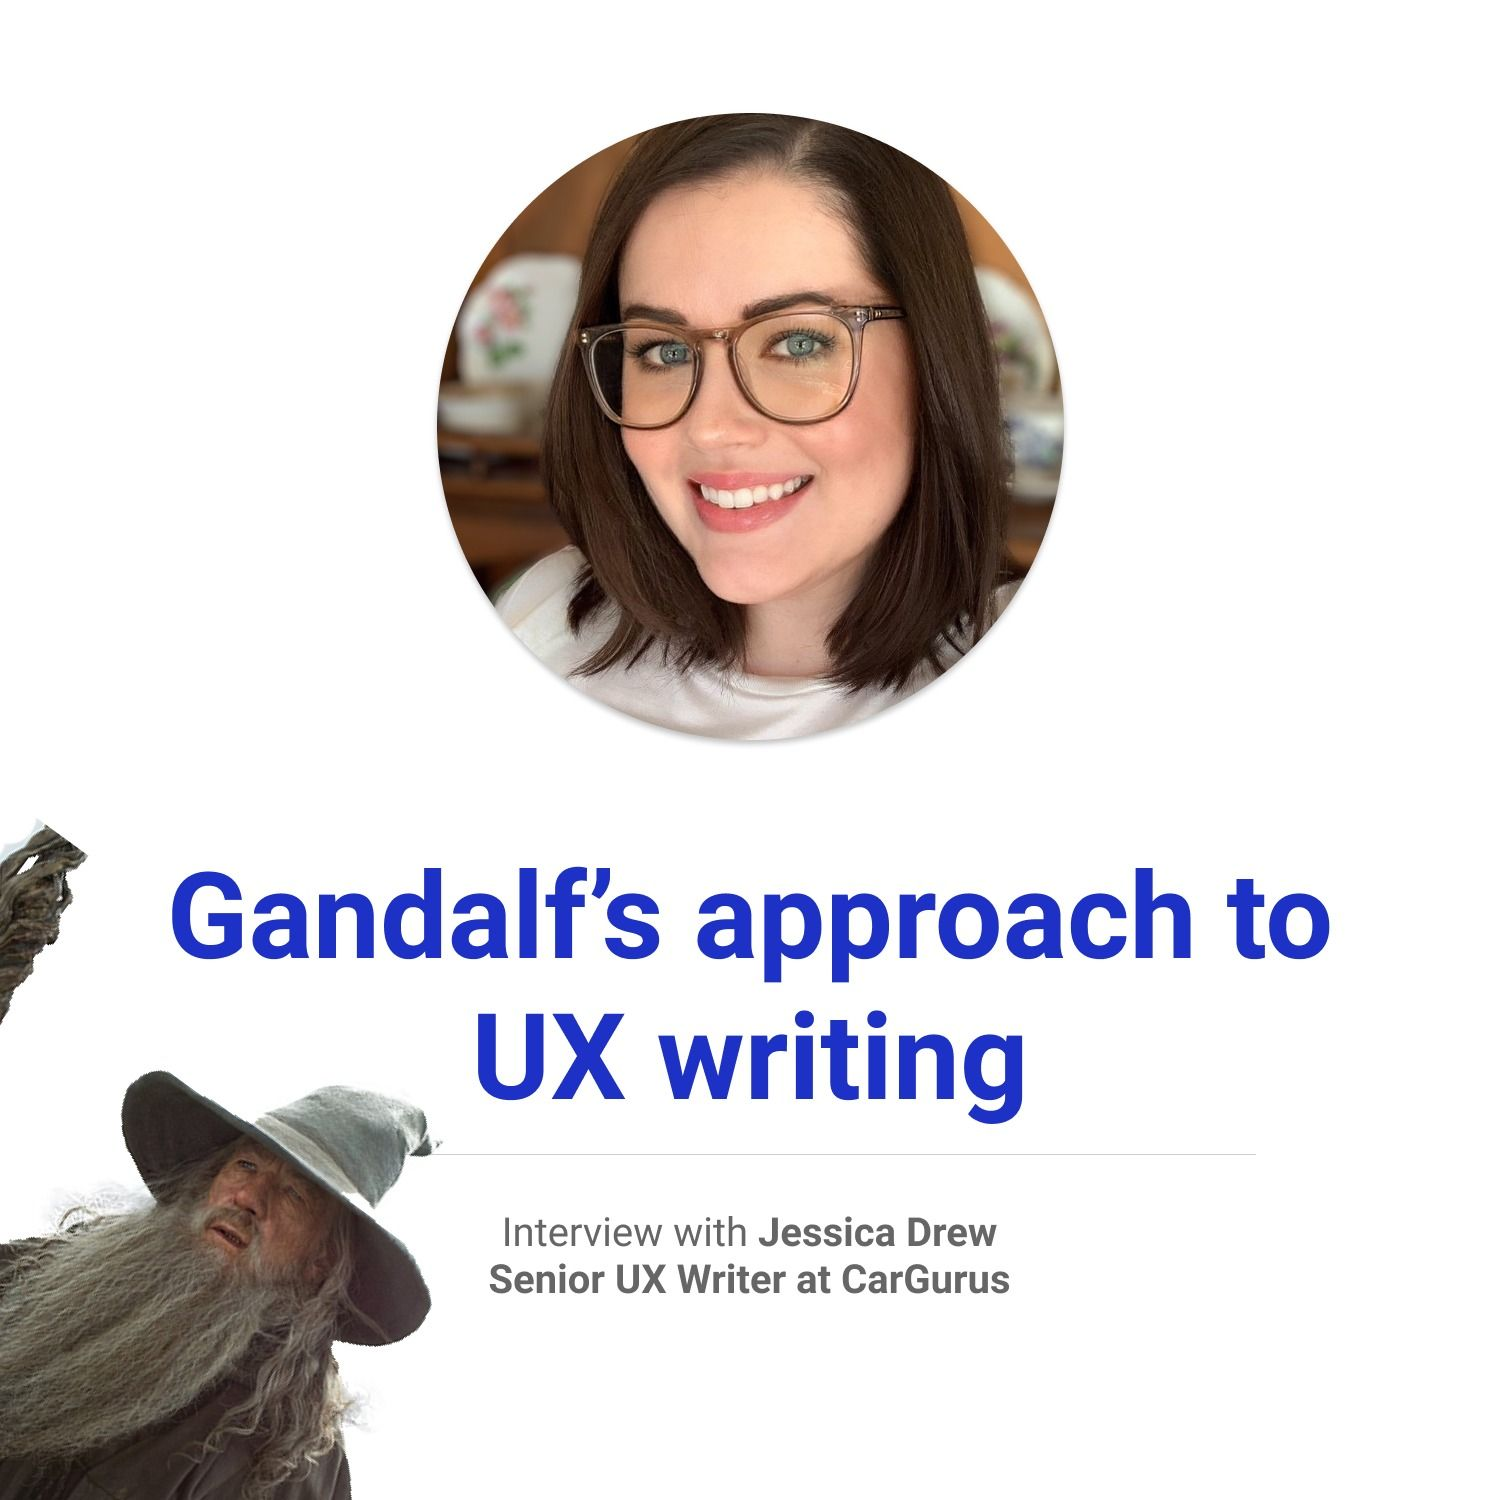 Gandalf's approach to UX writing   Interview with Jessica Drew of CarGurus